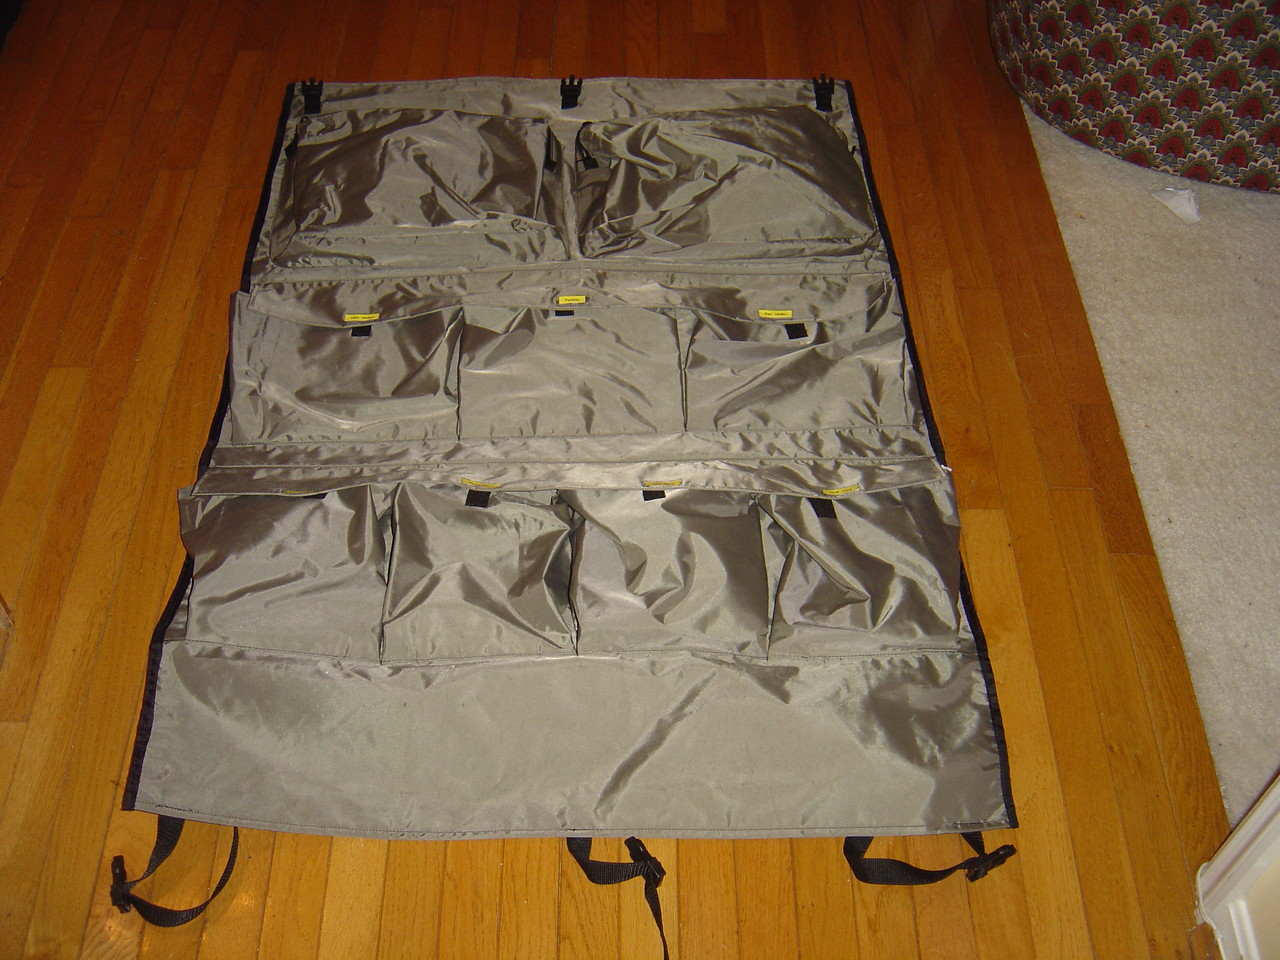 Lay the camper caddy with the pockets facing up